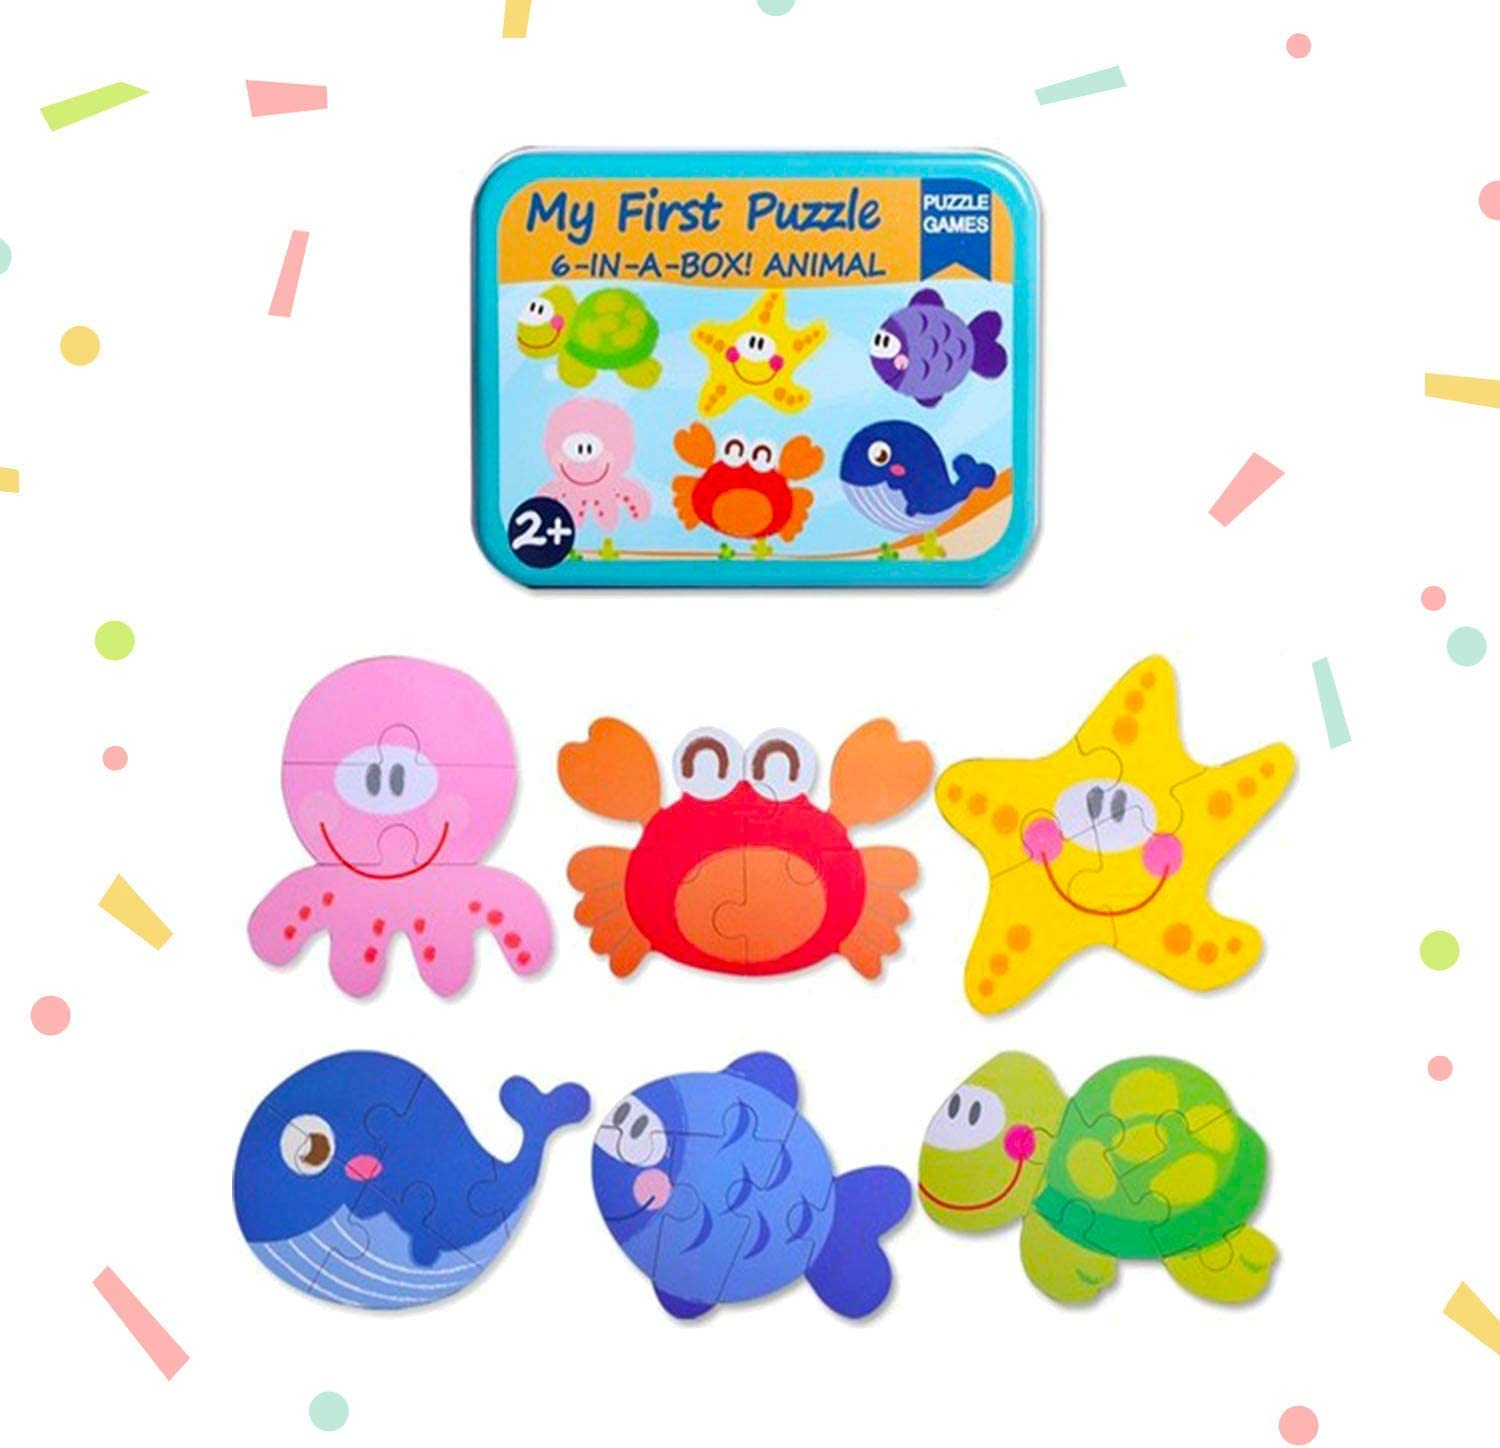 Baby's First Puzzle Wooden Animal and Vehicles Puzzles for Cognitive Development of Toddlers and Preschoolers – Homeschooling and Kindergarten Montessori Teaching Aids – Sea Animals